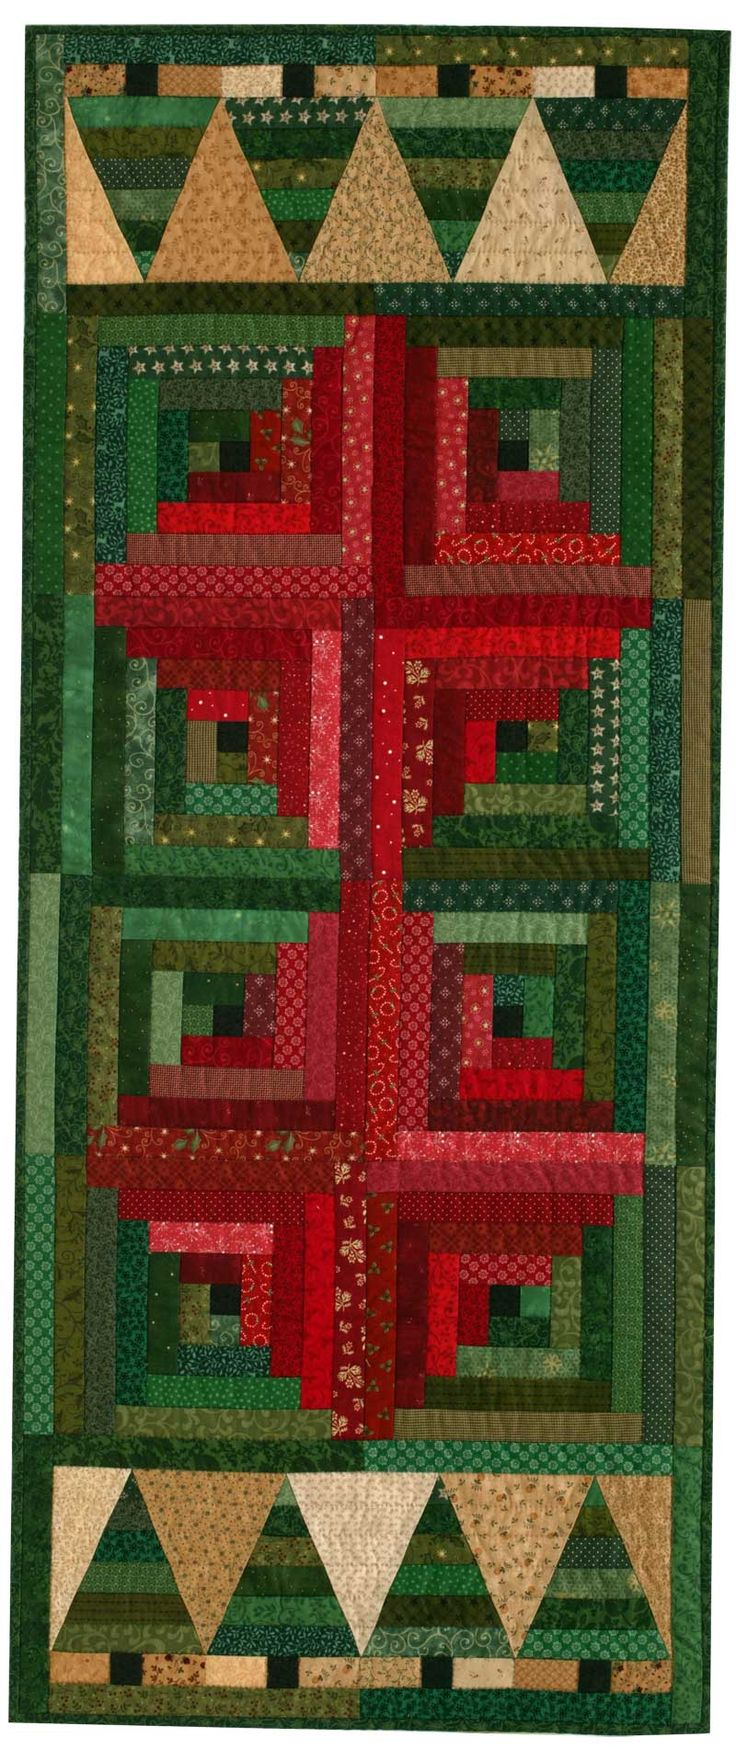 Free Printable Christmas Table Runner Quilt Patterns : 1000+ ideas about Christmas Table Runners on Pinterest Table Runners, Quilted Table Runners ...